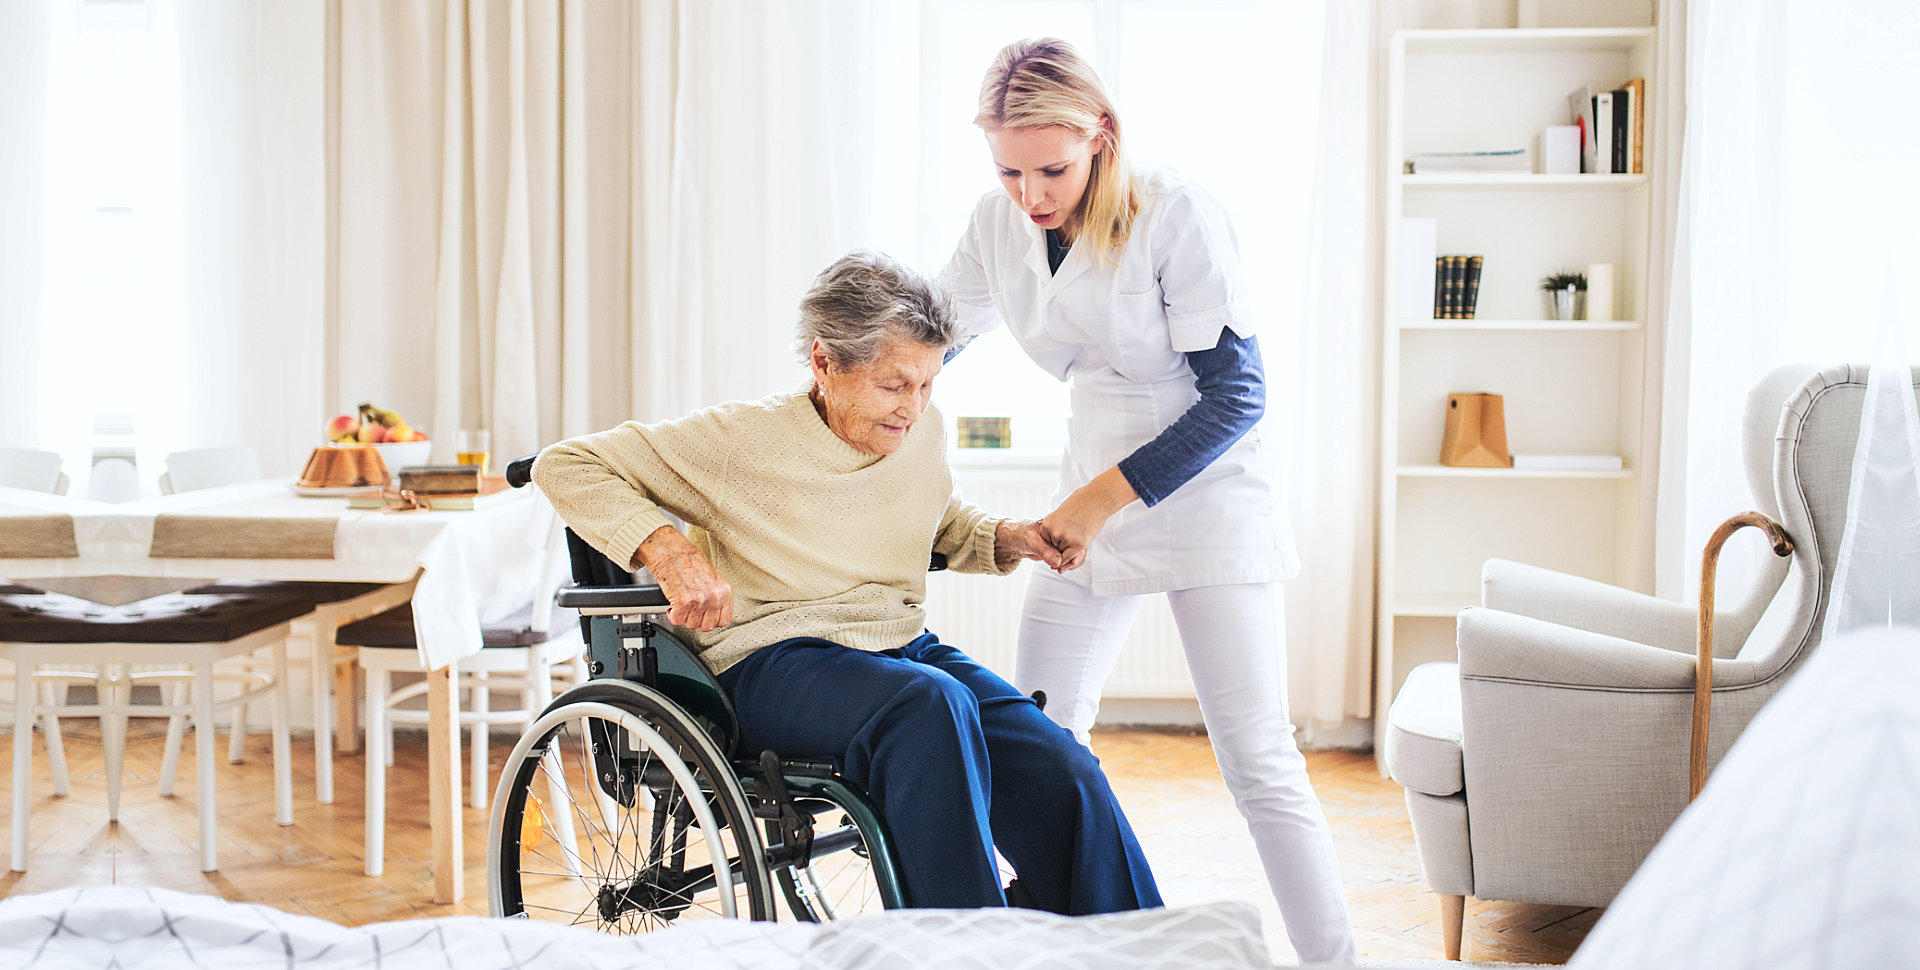 elder woman on a wheelchair assisted by caregiver in standing up